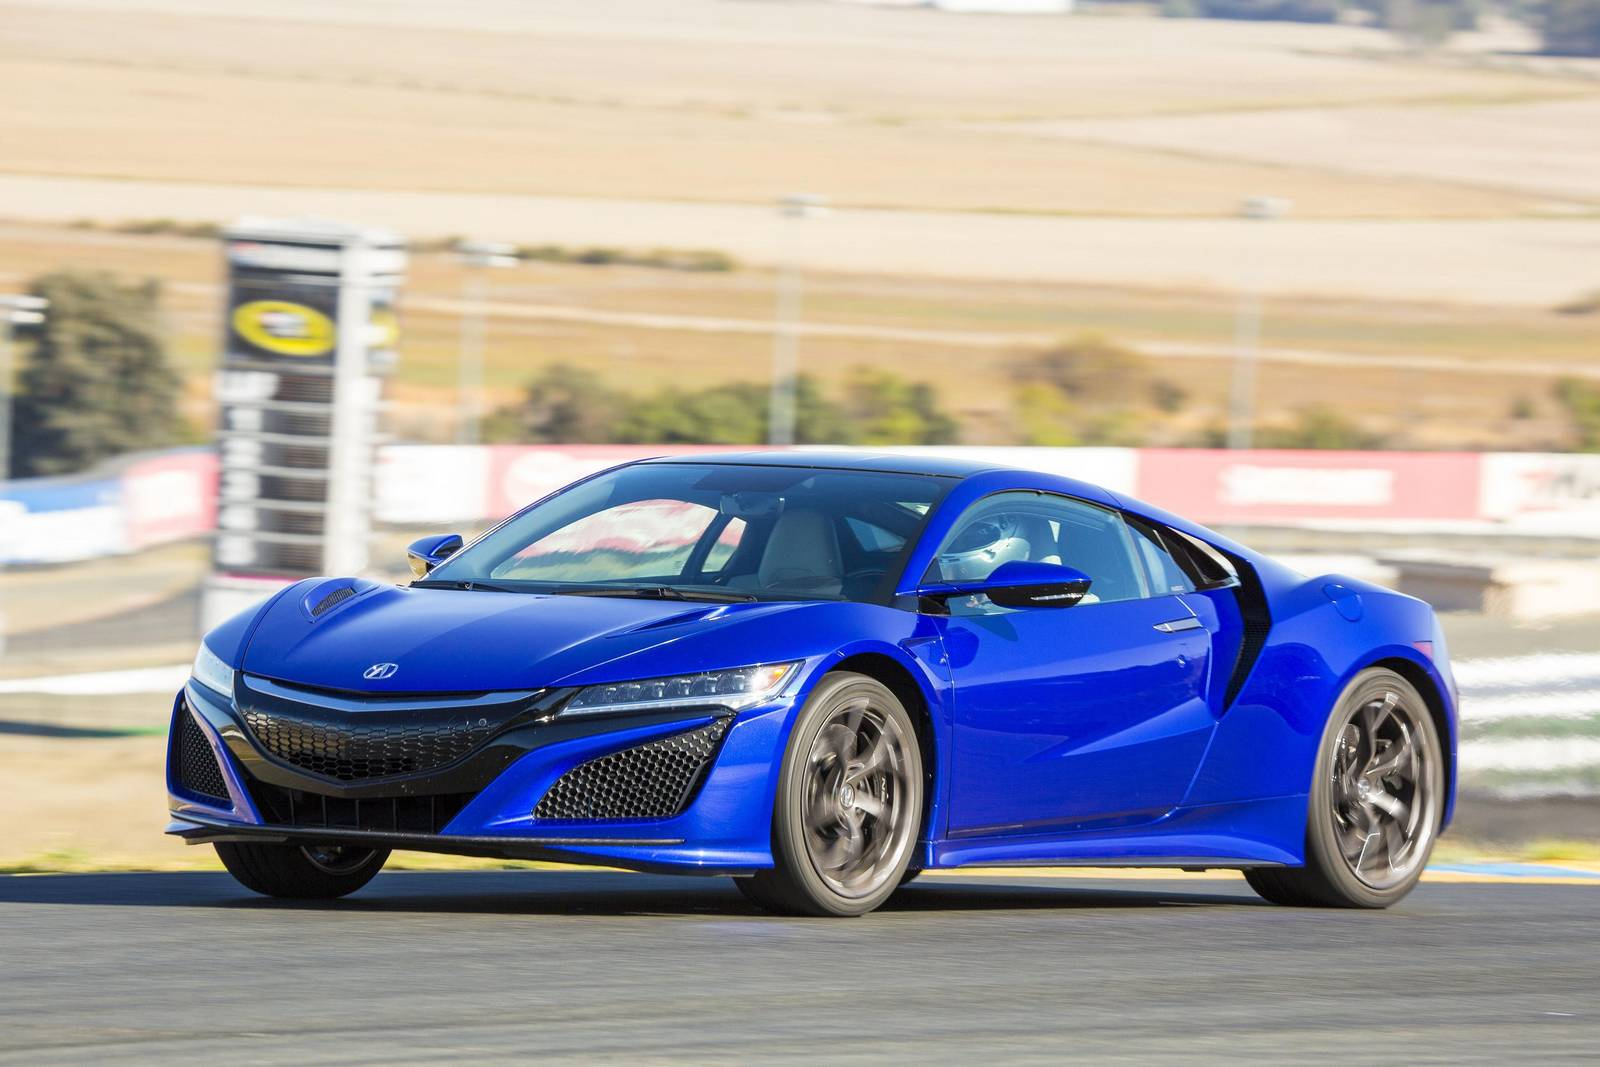 2017 honda nsx technical details revealed 573 hp total gtspirit. Black Bedroom Furniture Sets. Home Design Ideas